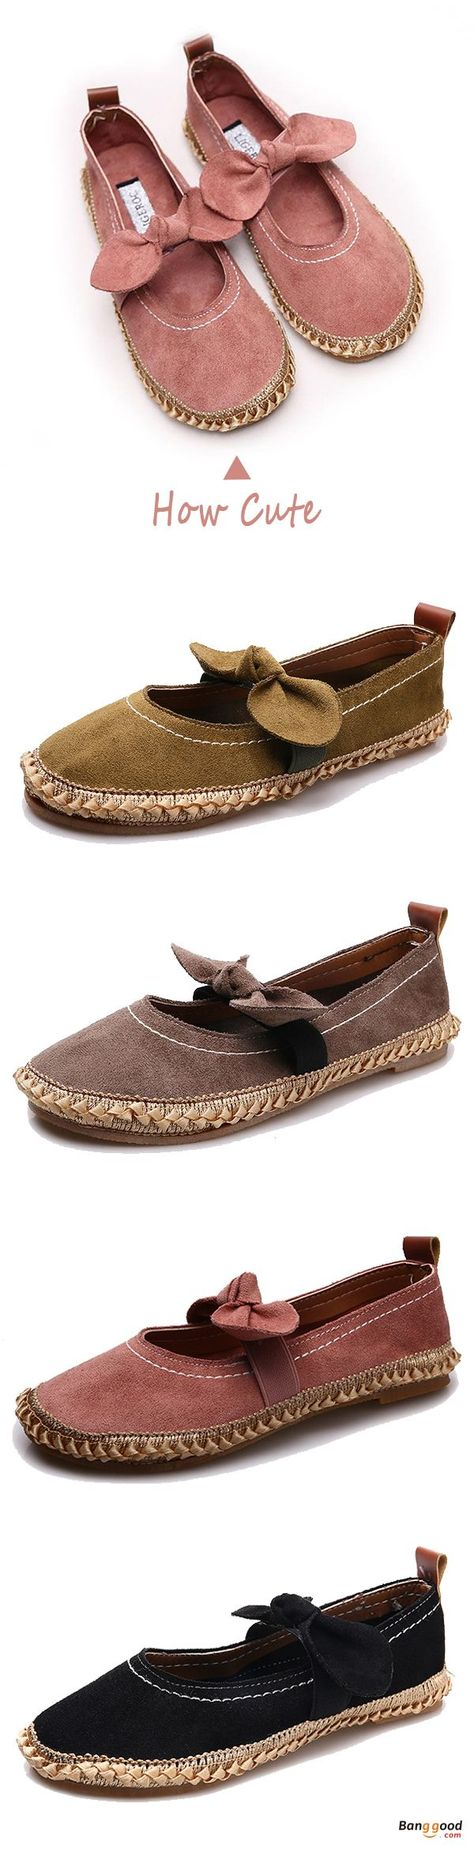 Women Comfy Breathable Striped Slip On Canvas Lazy Loafers Flats Shoes US 5-9